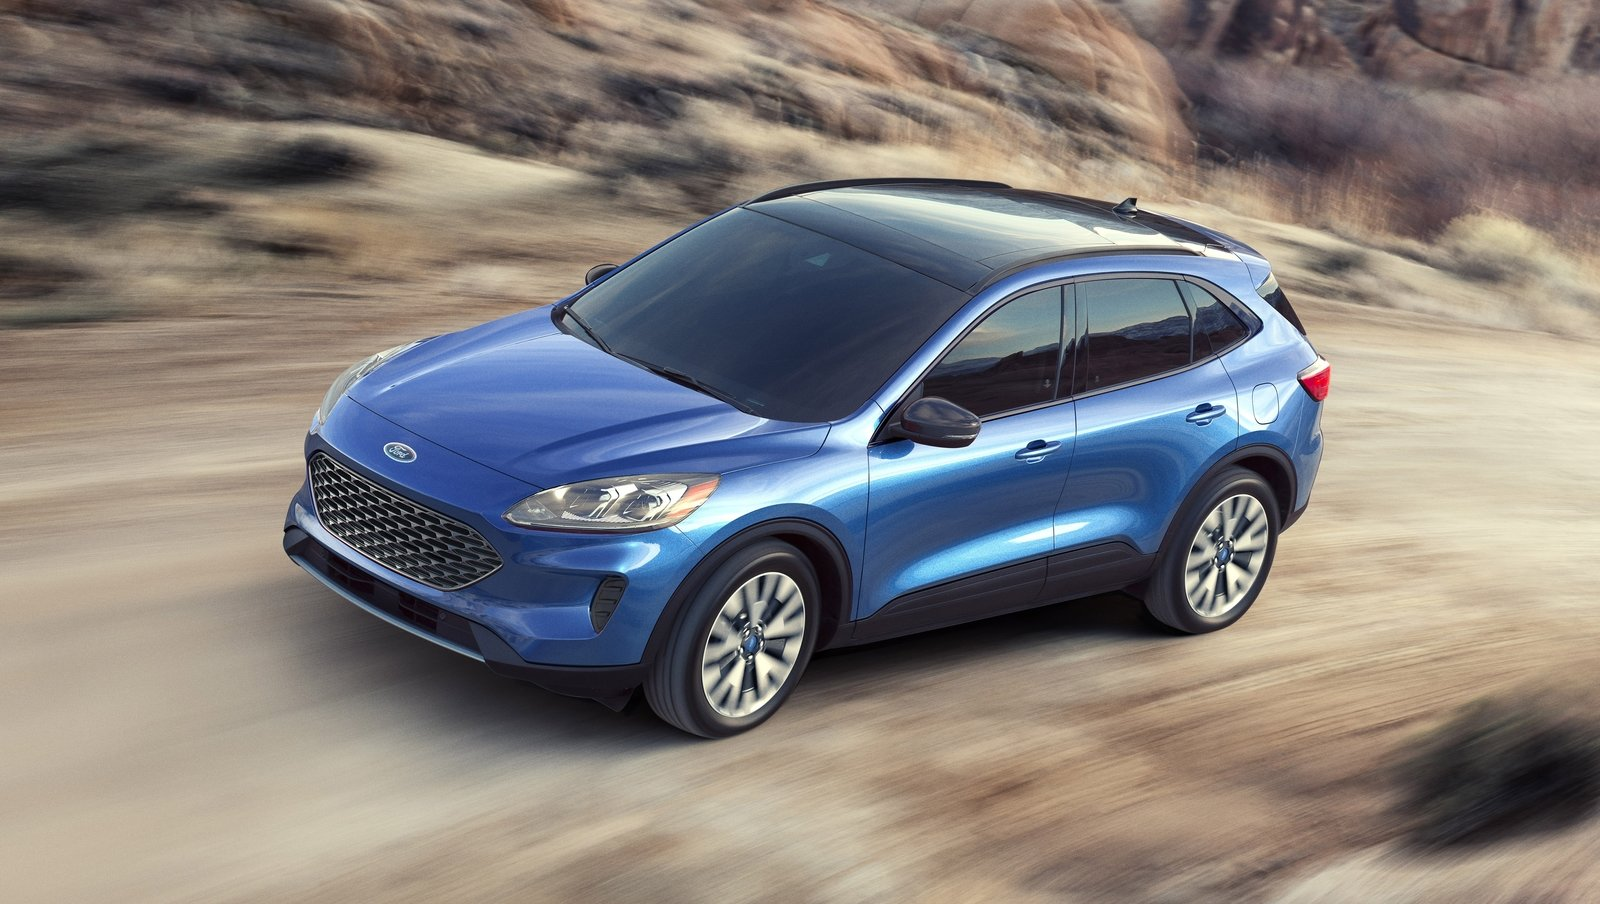 Ford Escape: Latest News, Reviews, Specifications, Prices, Photos And Videos | Top Speed